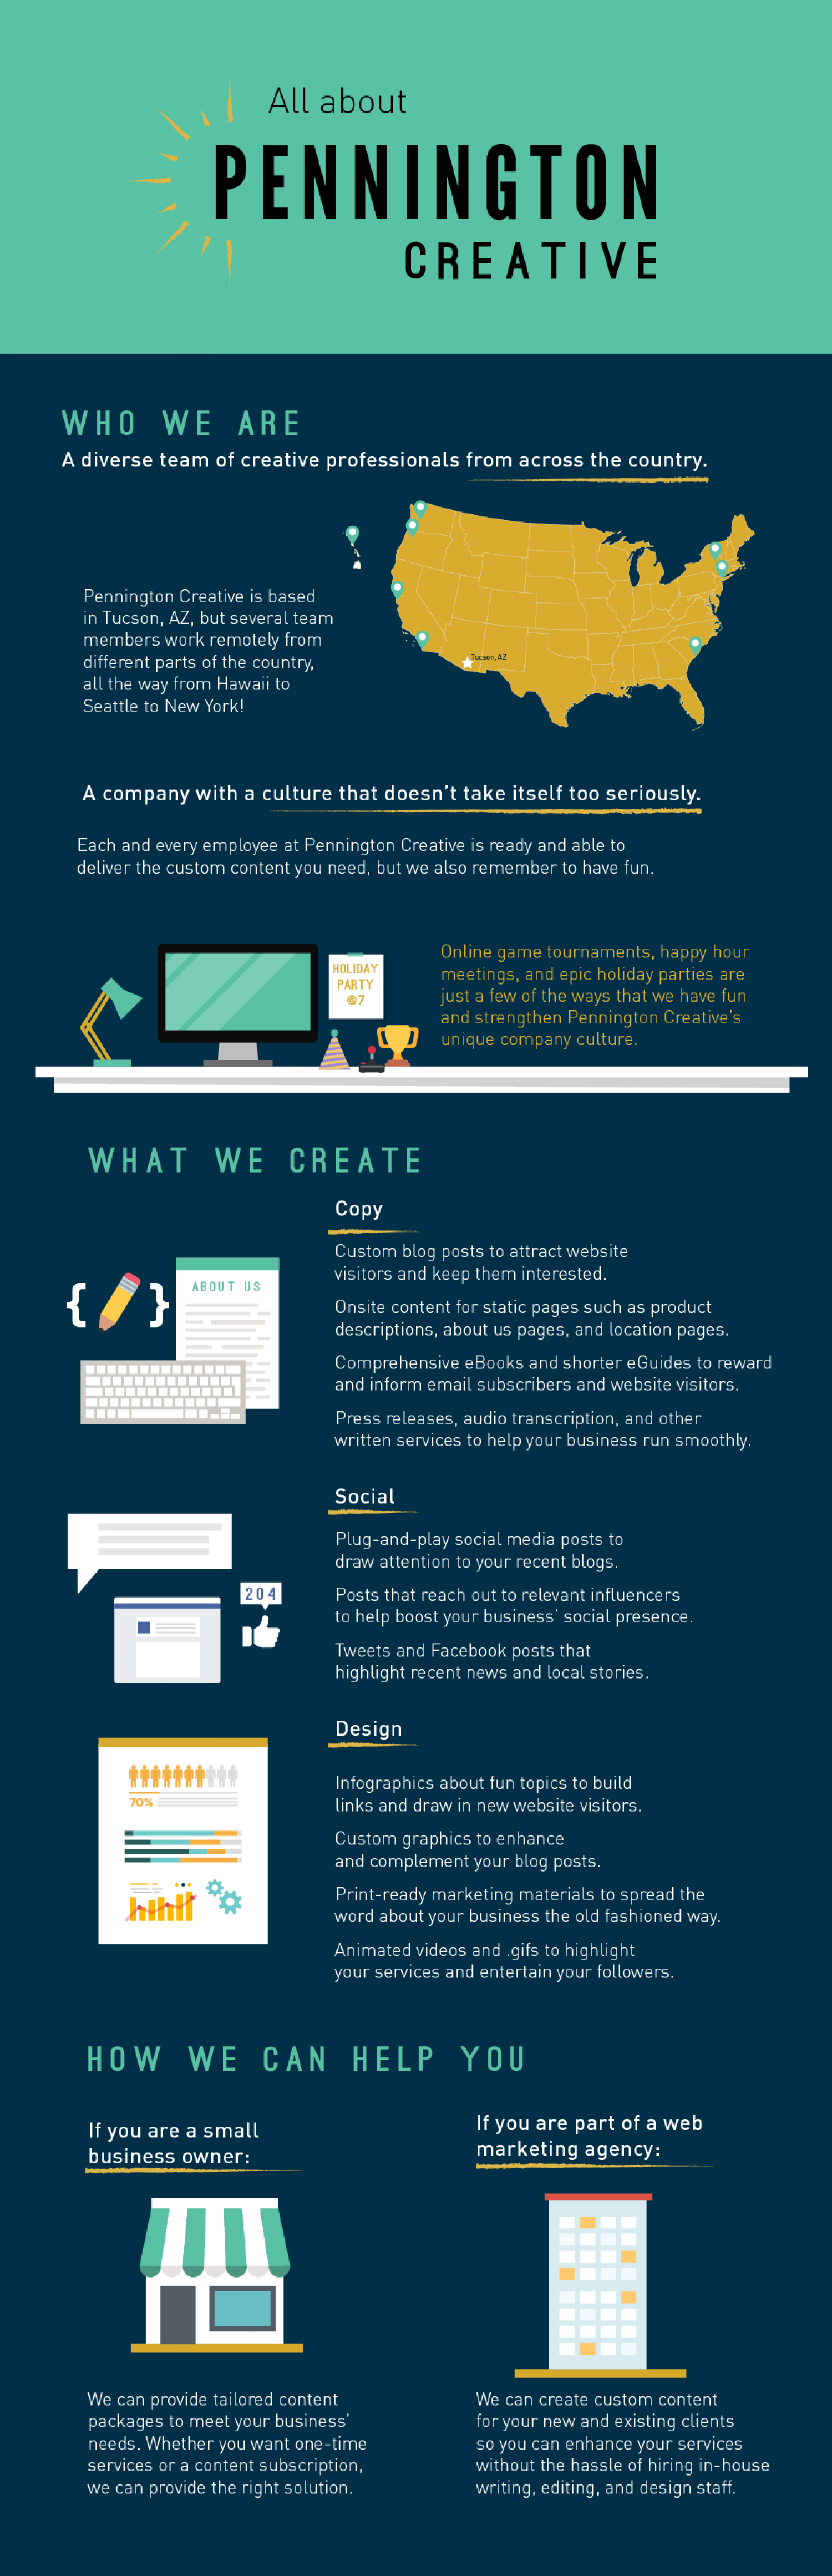 All about Pennington Creative Infographic